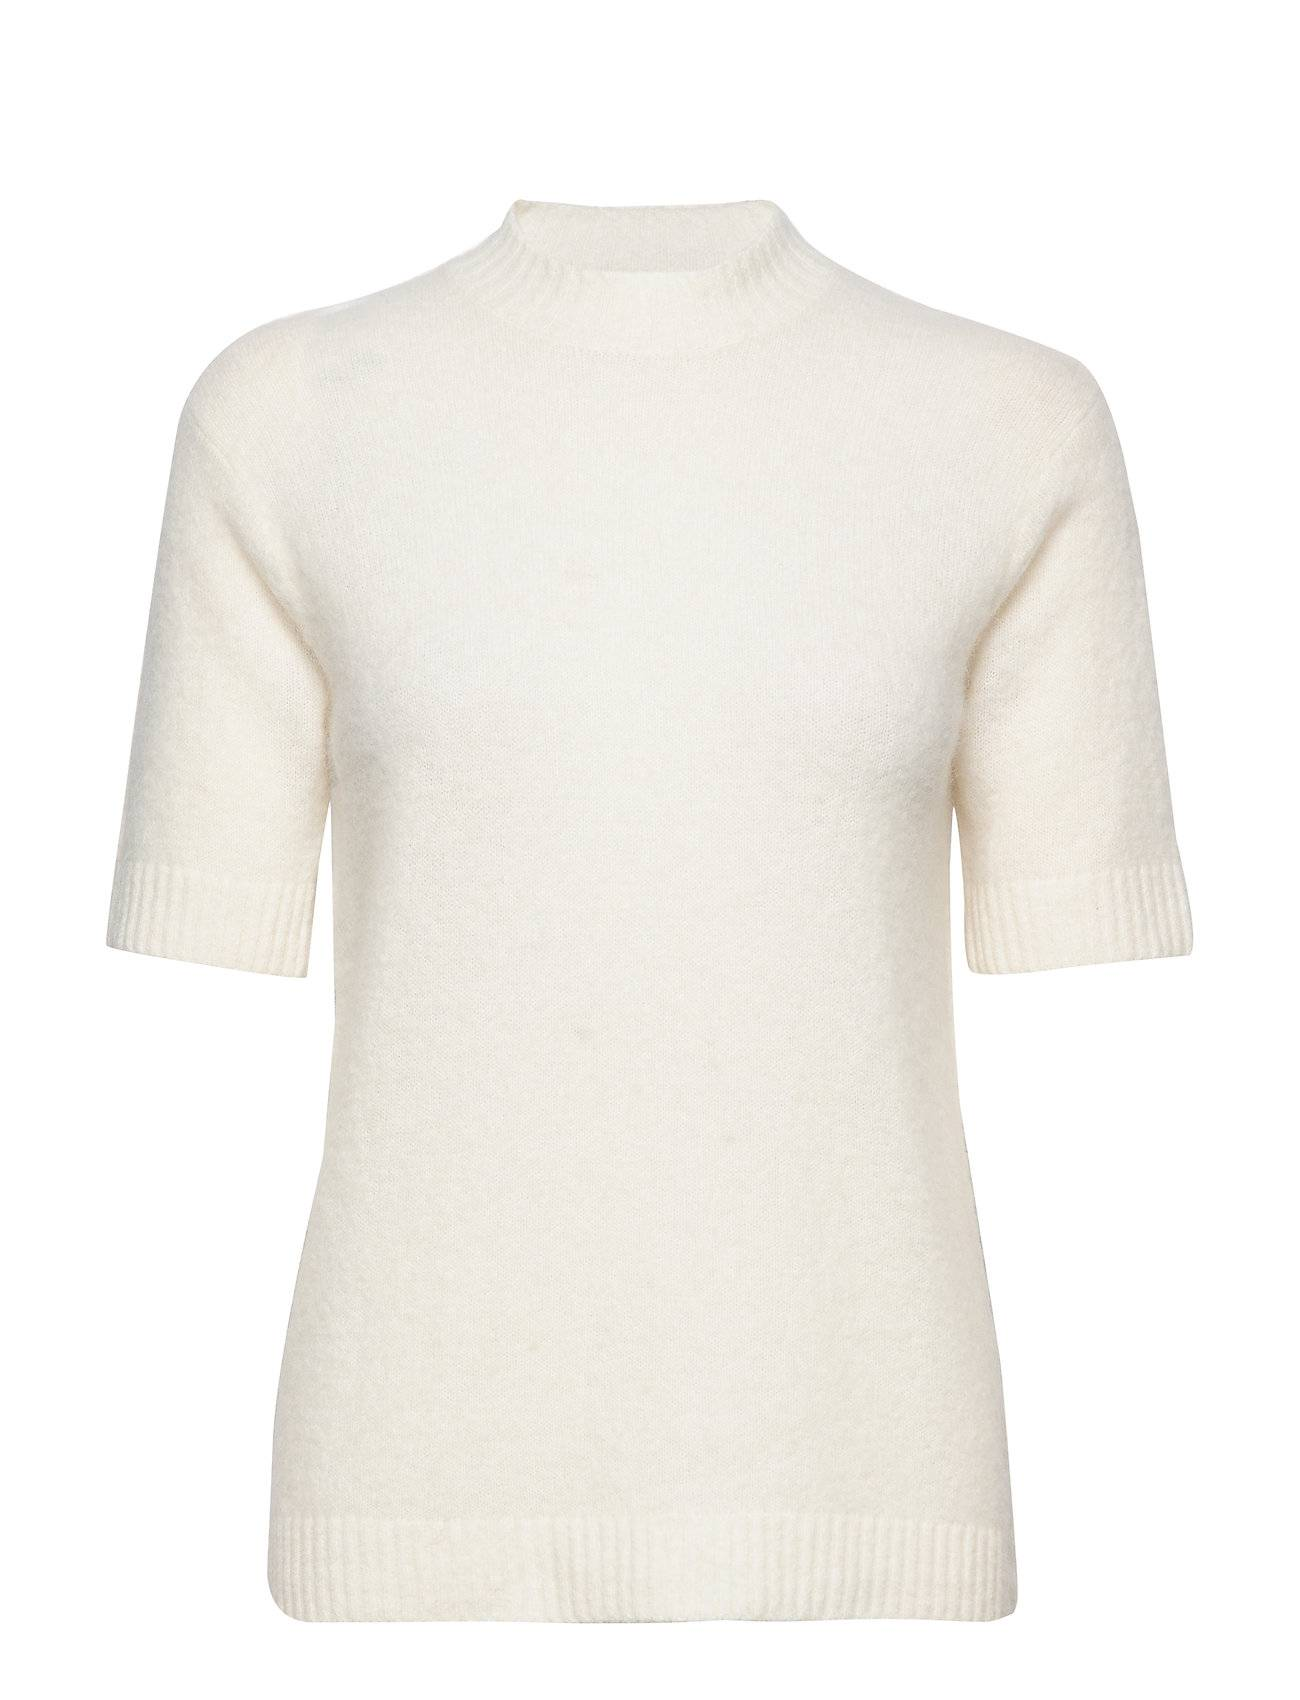 Camilla Pihl Rome T-shirts & Tops Knitted T-shirts/tops Kermanvärinen Camilla Pihl